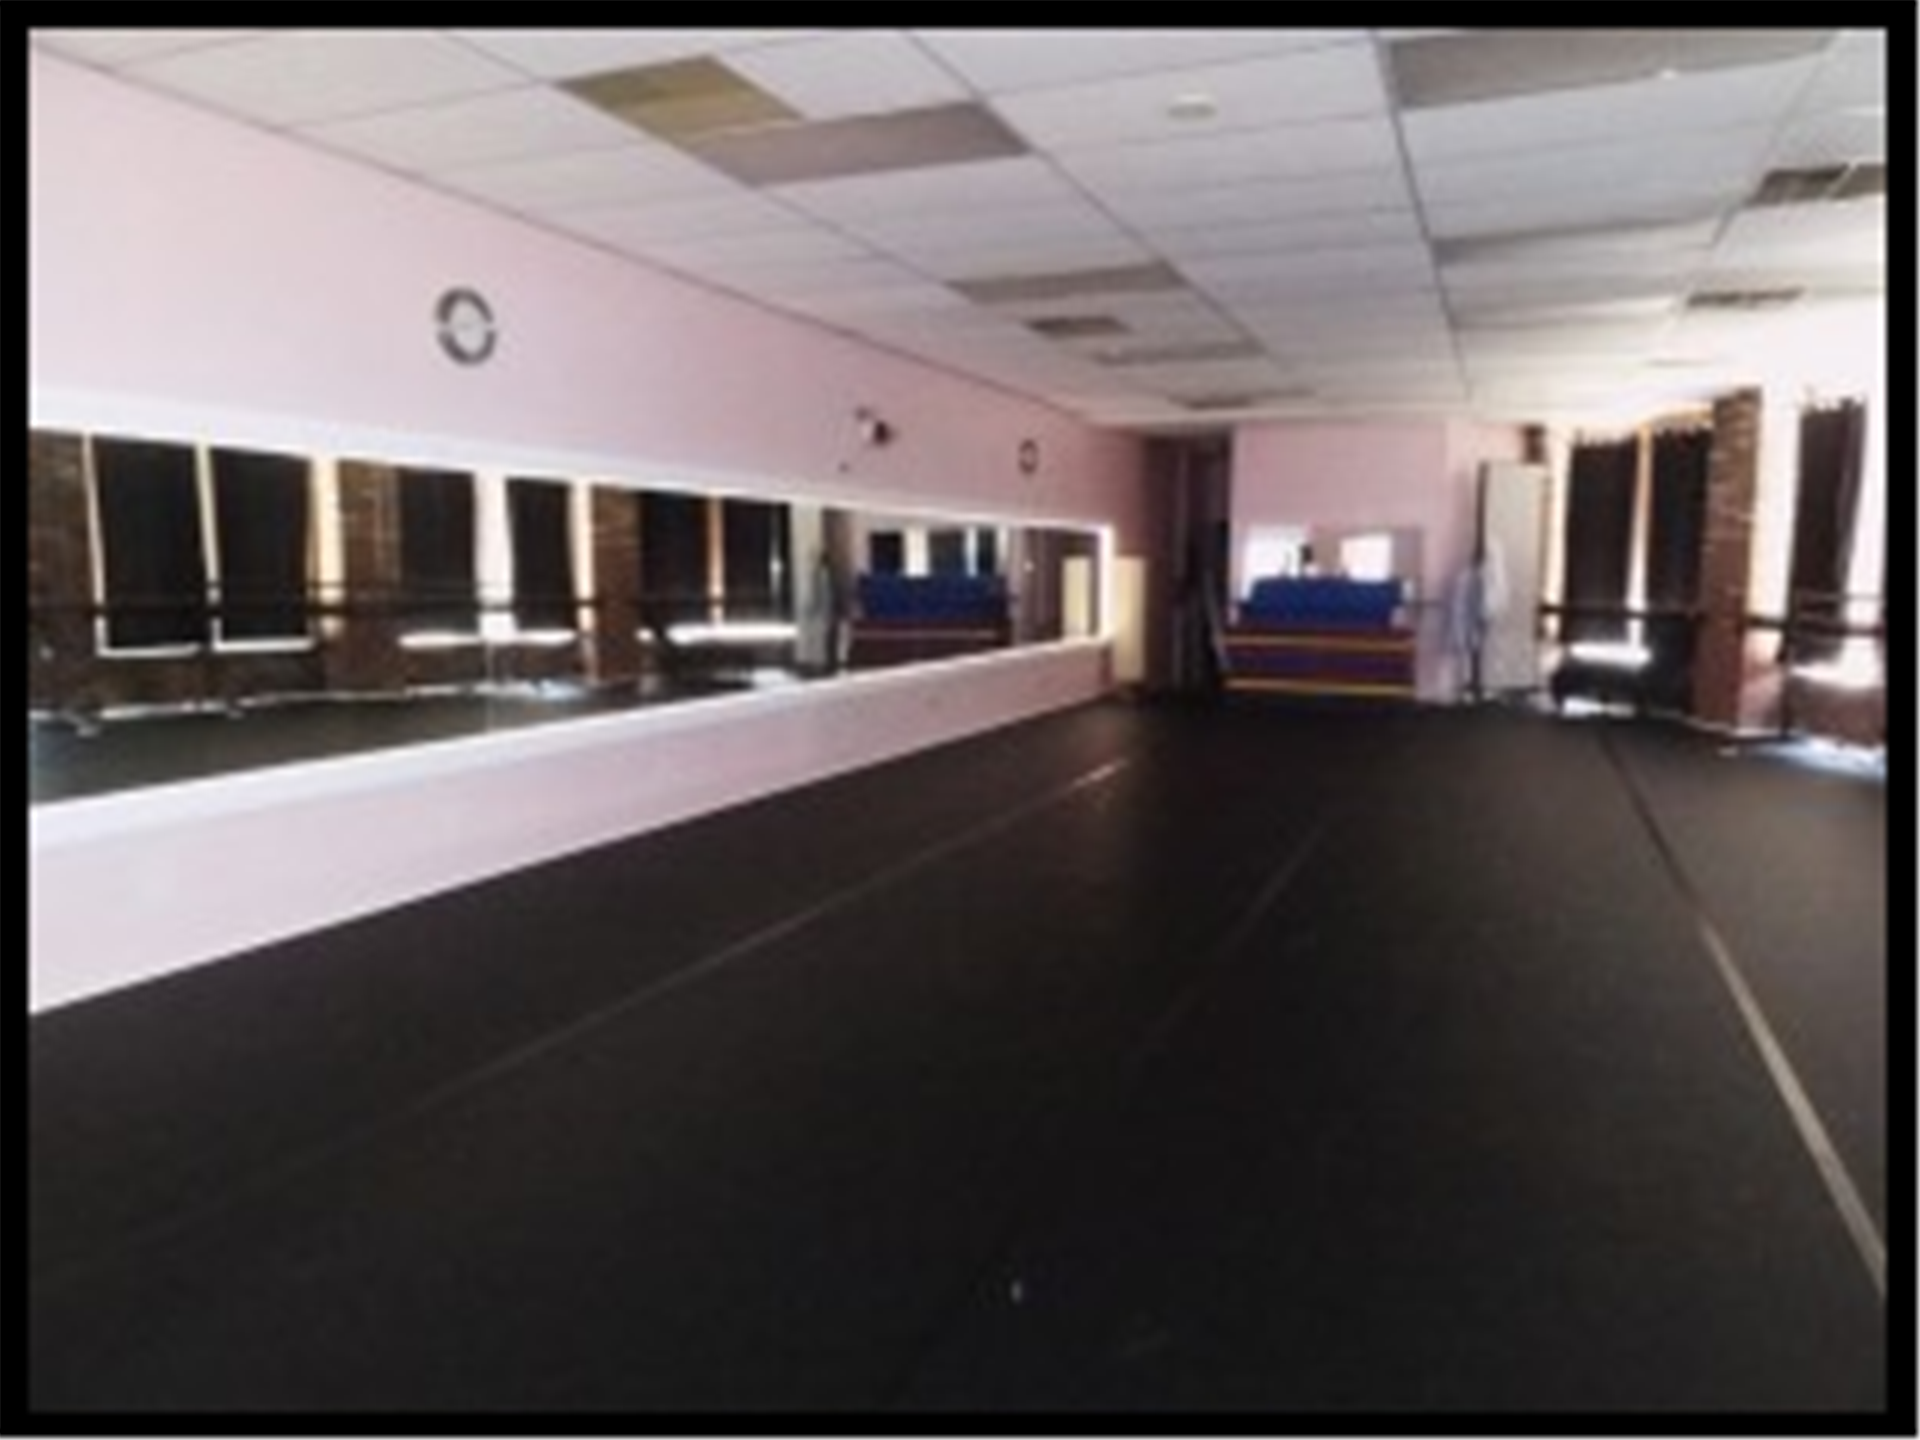 inside evolve dance complex